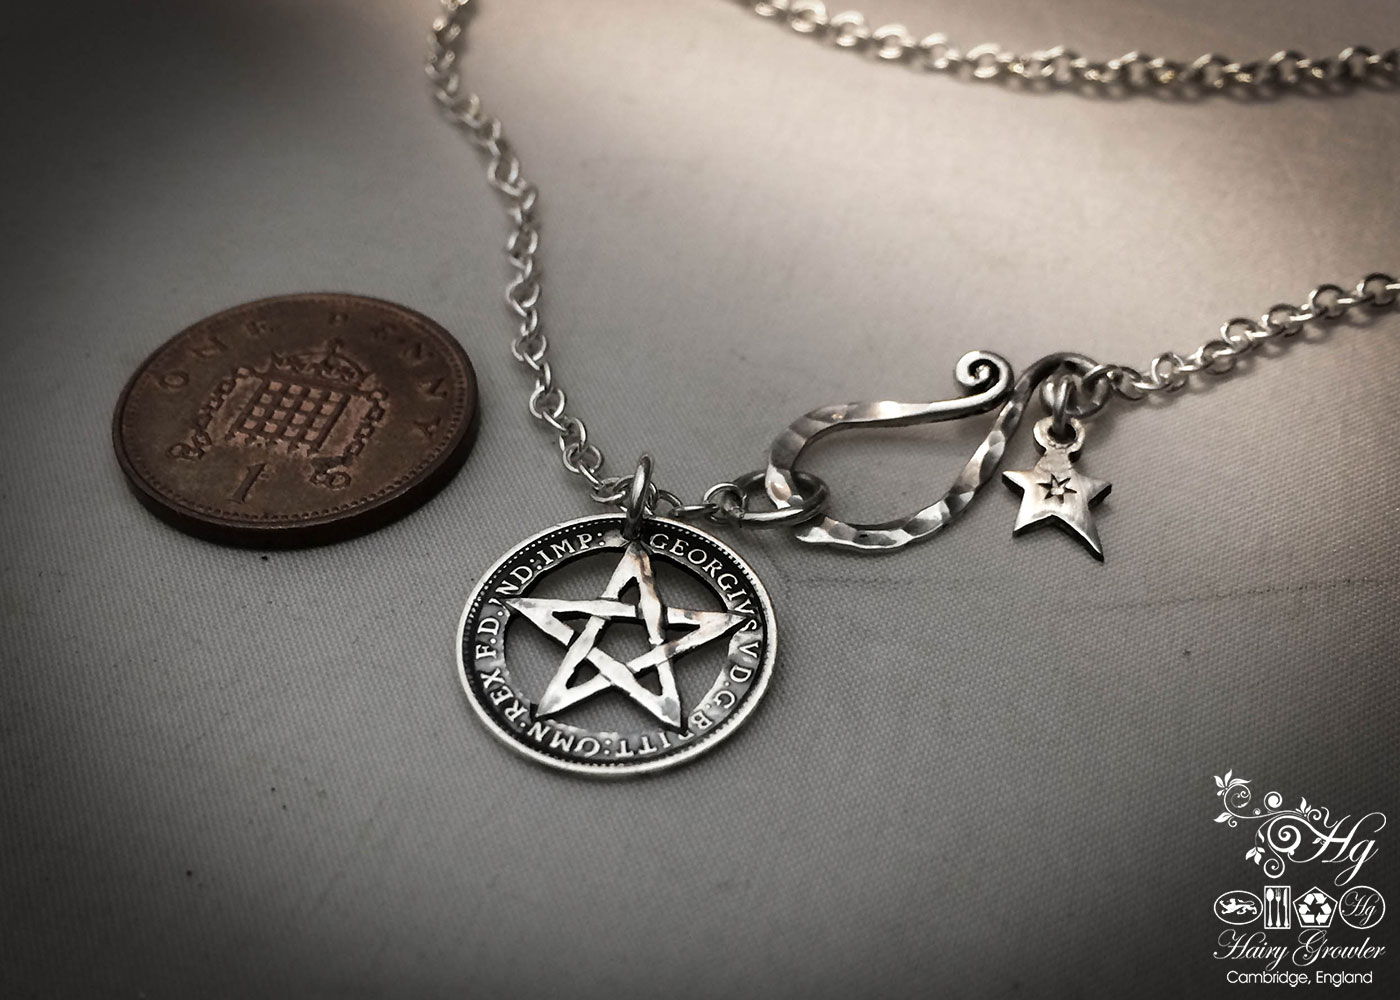 handmade, upcycled, contemporary and original silver coin pentacle necklace pendant